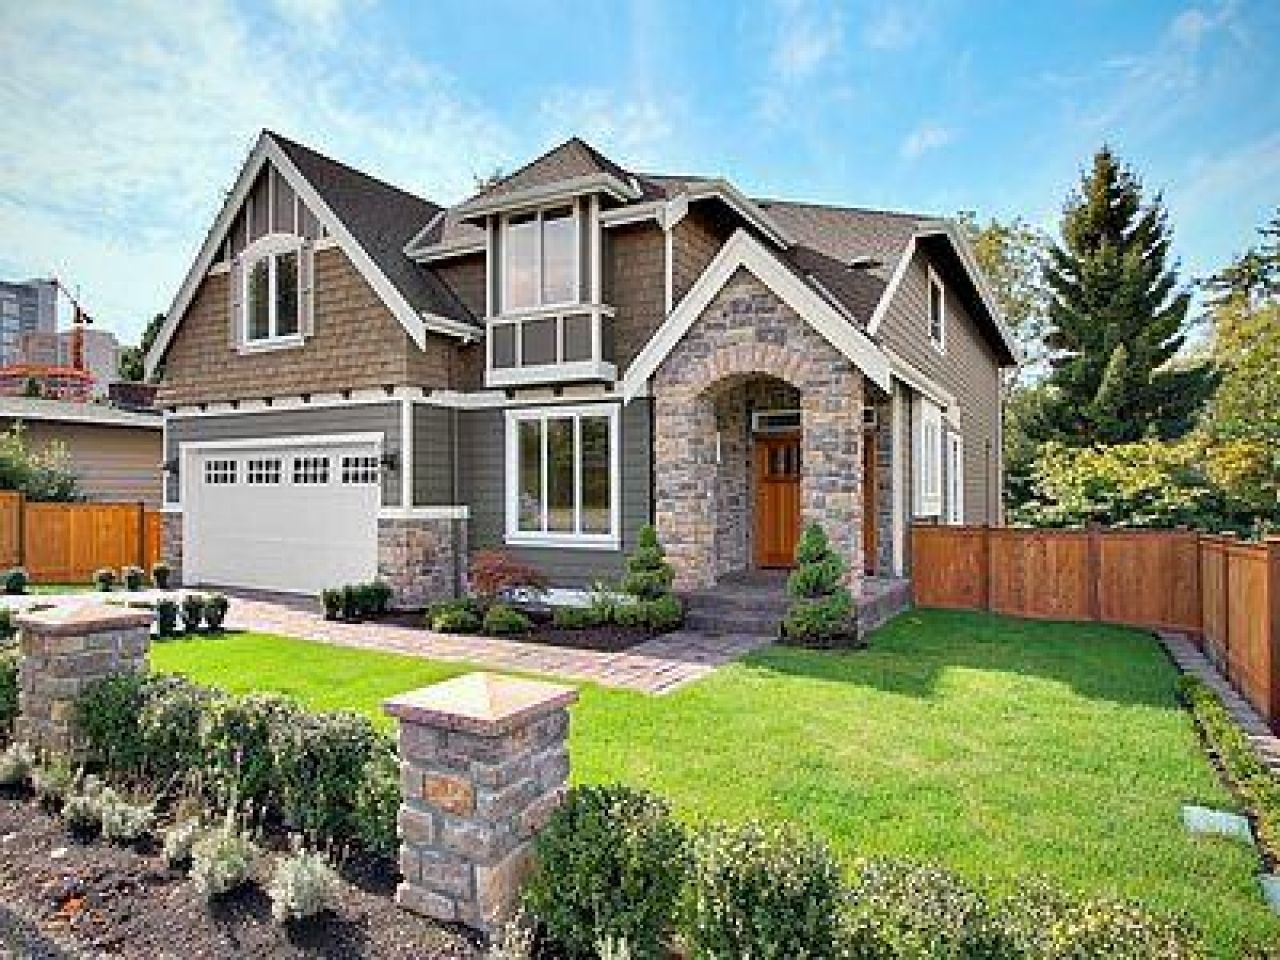 Contemporary Architecture HGTV | Craftsman style houses, Craftsman ...